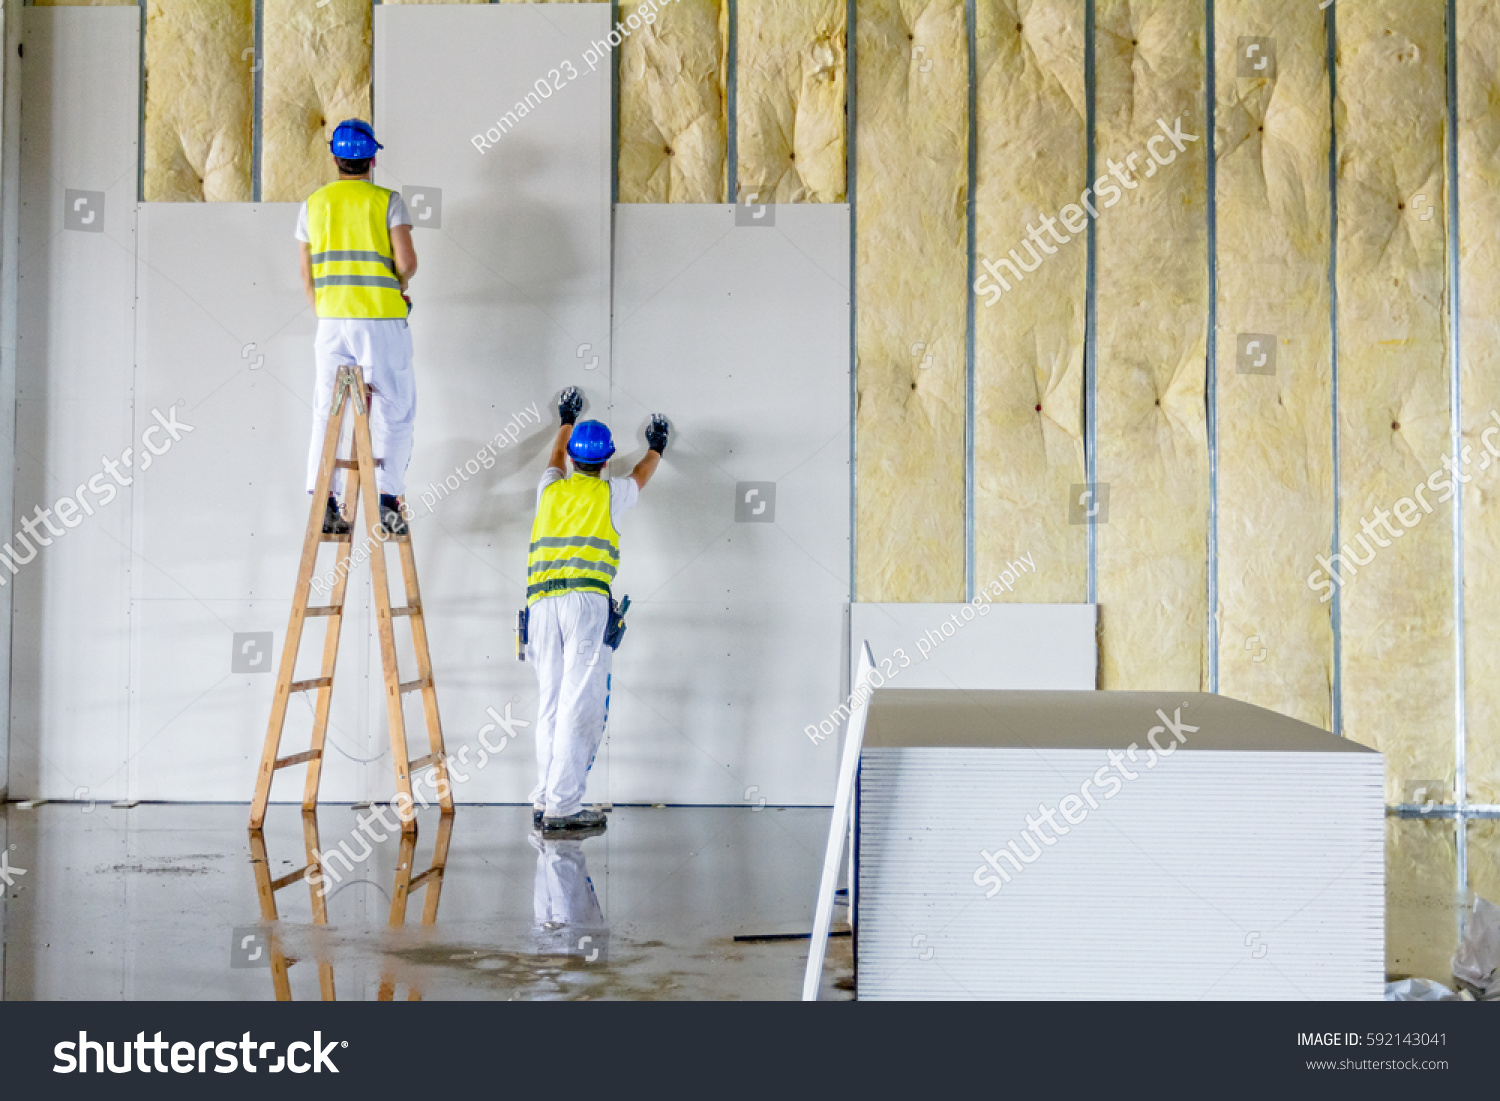 stock-photo-workers-are-assembly-gypsum-wall-plasterboard-is-under-construction-using-wooden-ladder-592143041 (1)